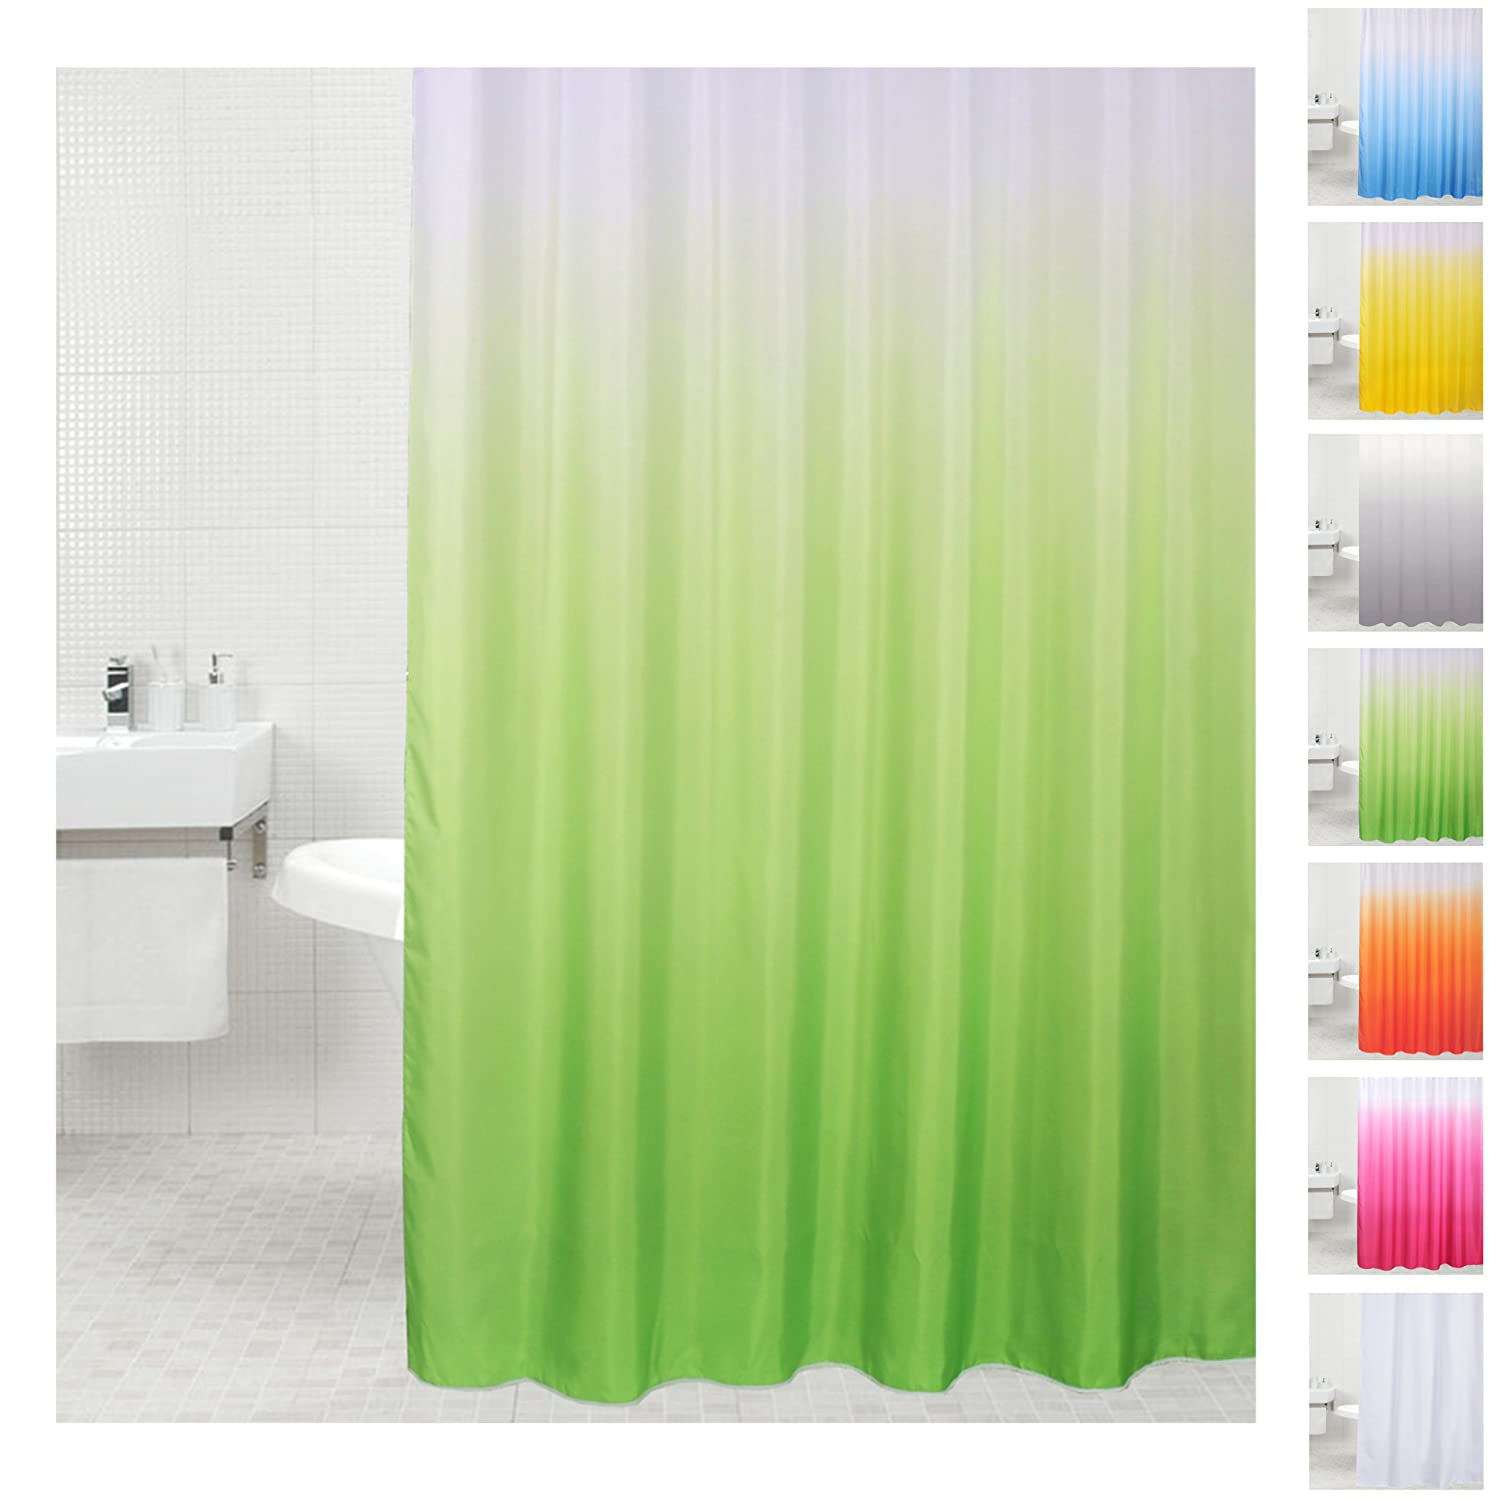 Anti Mildew Shower Curtain Single Colour to Choose From, many Fabric, Fabric, Blue, 180 x 180 cm Sanilo D032599